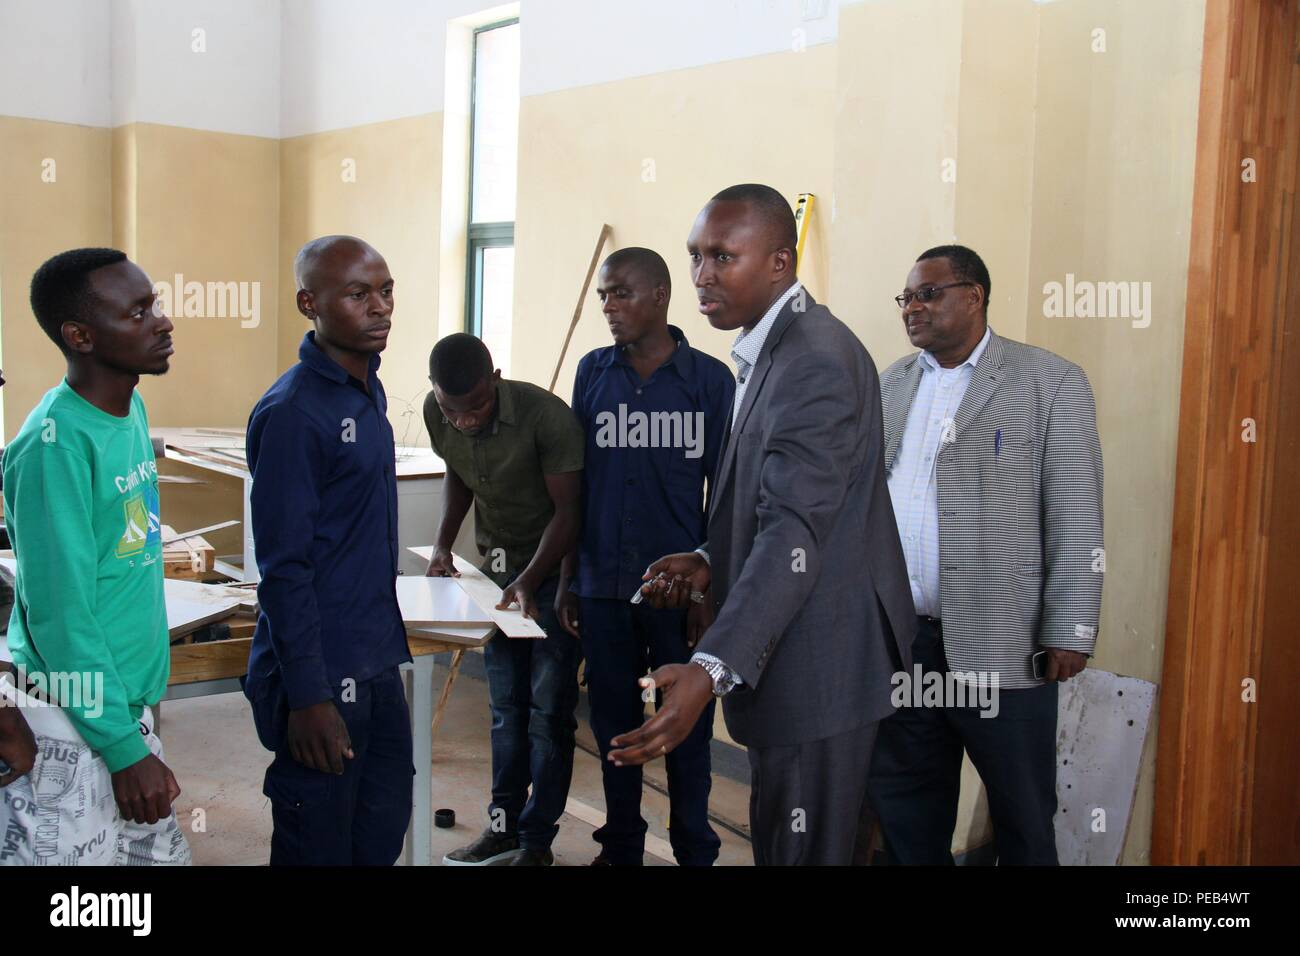 Musanze, Rwanda. 13th Aug, 2018. Emile Abayisenga (2nd R), principal of Integrated Polytechnic Regional College Musanze and chairman of Musanze district council, instructs students at a workshop in the college in Musanze district, northern Rwanda, on Aug. 8, 2018. As the largest polytechnic in northern Rwanda, the college, constructed by Chinese enterprise China Geo-Engineering Corporation using funds from the Chinese government, is playing an important role in training technical persons in Rwanda. Credit: Lyu Tianran/Xinhua/Alamy Live News Stock Photo